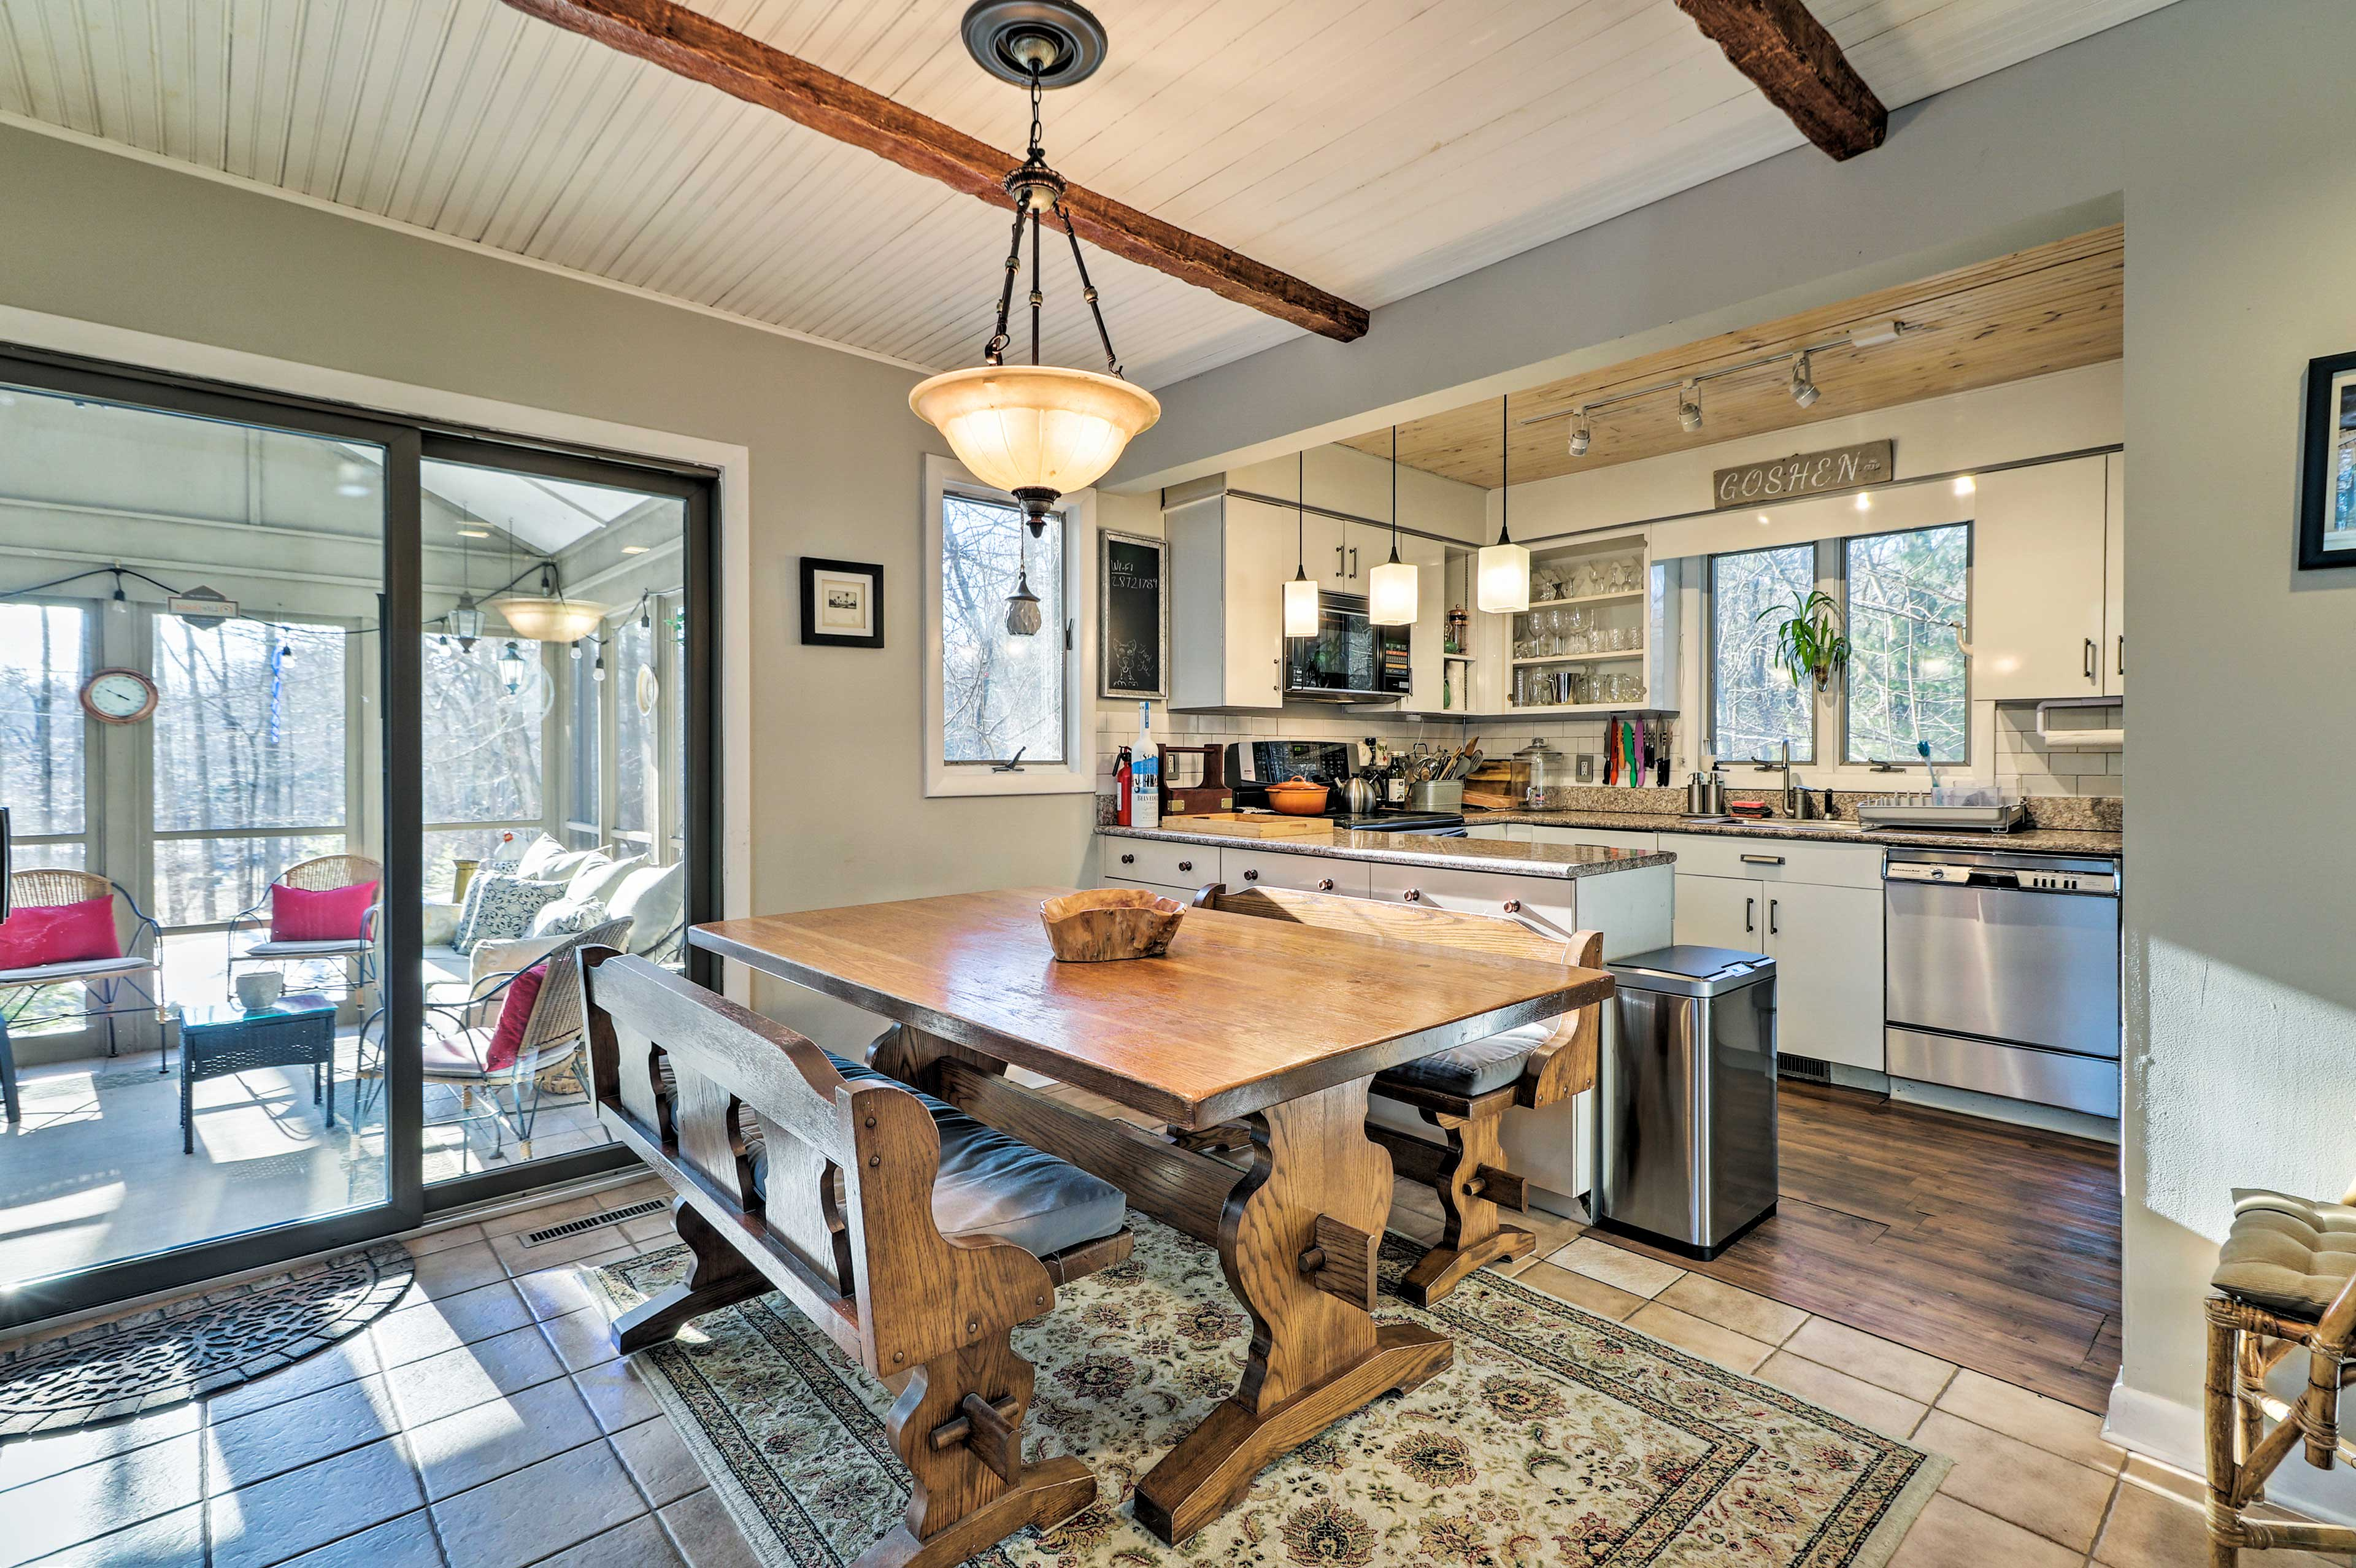 Enjoy a home-cooked meal at the large dining table.